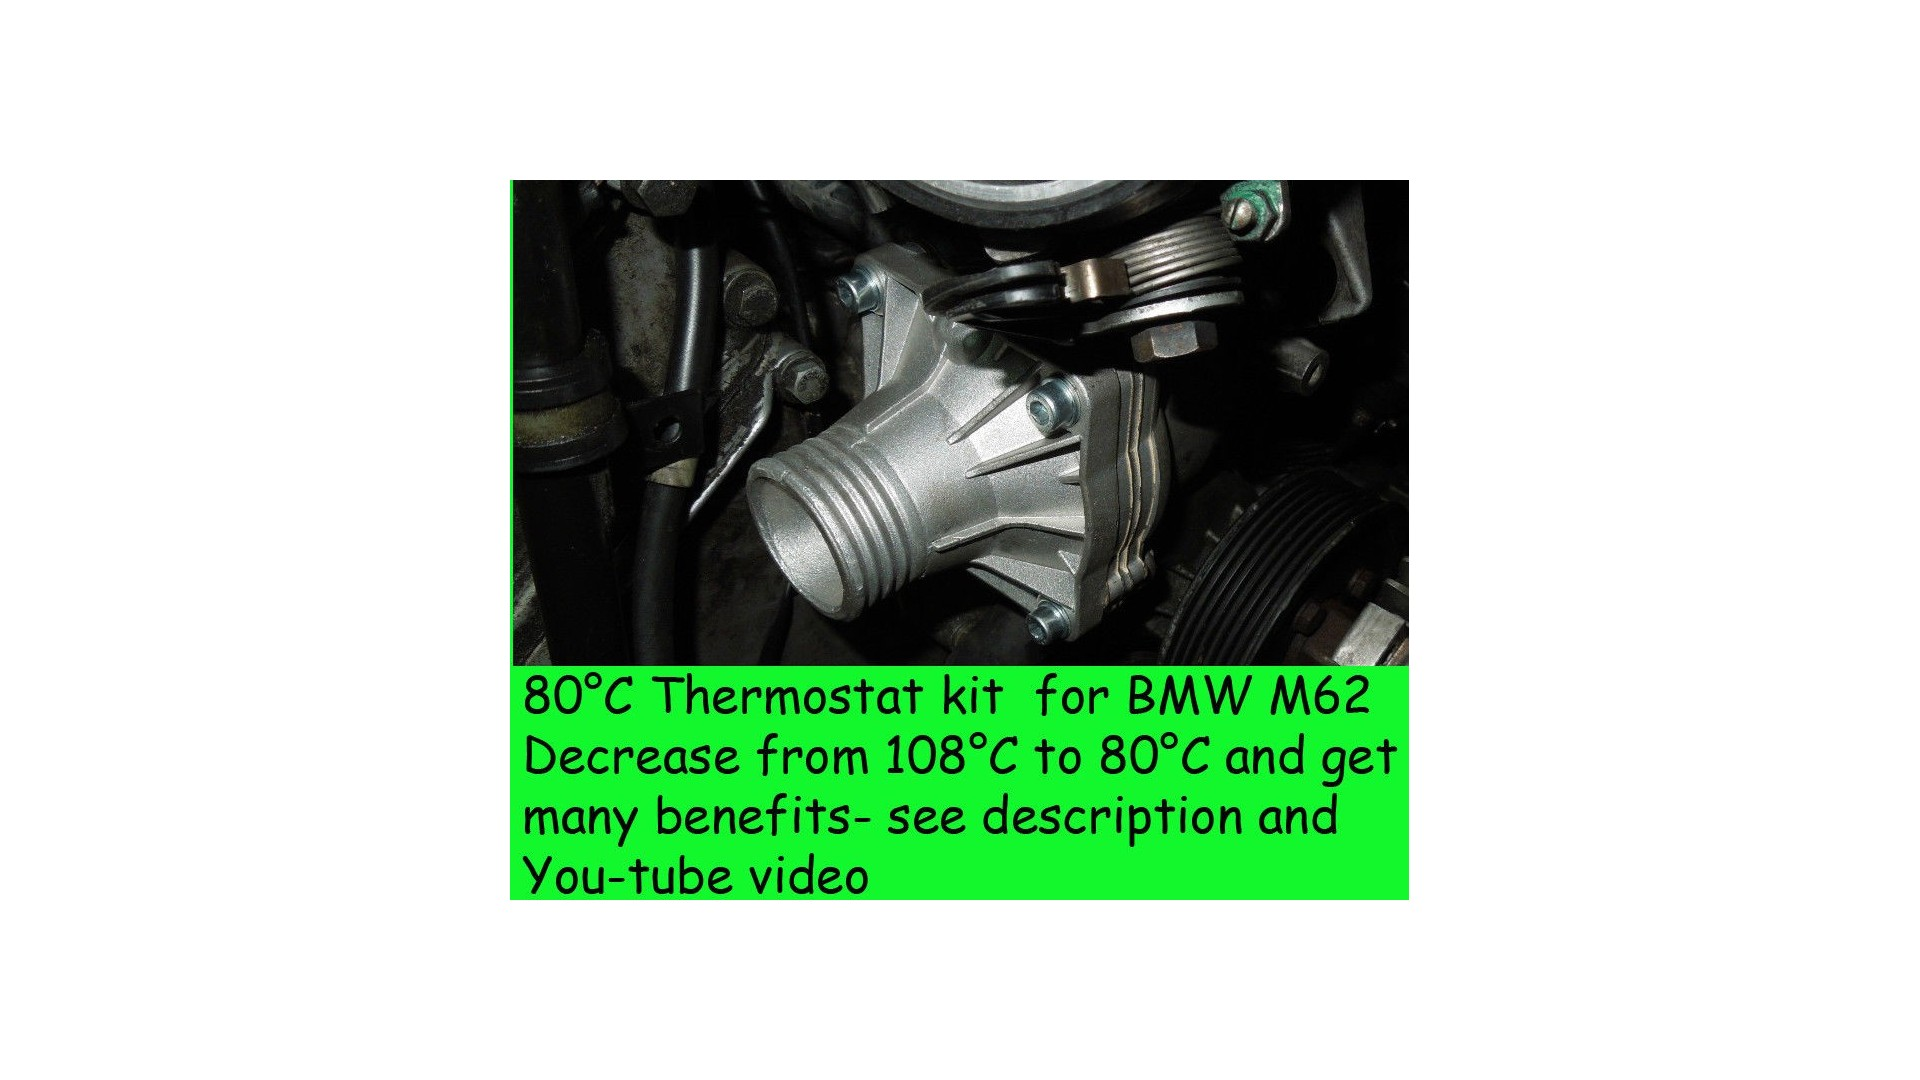 hight resolution of  80c thermostat kit for bmw e39 540i e38 740i x5 z8 e52 m62 range rover 44